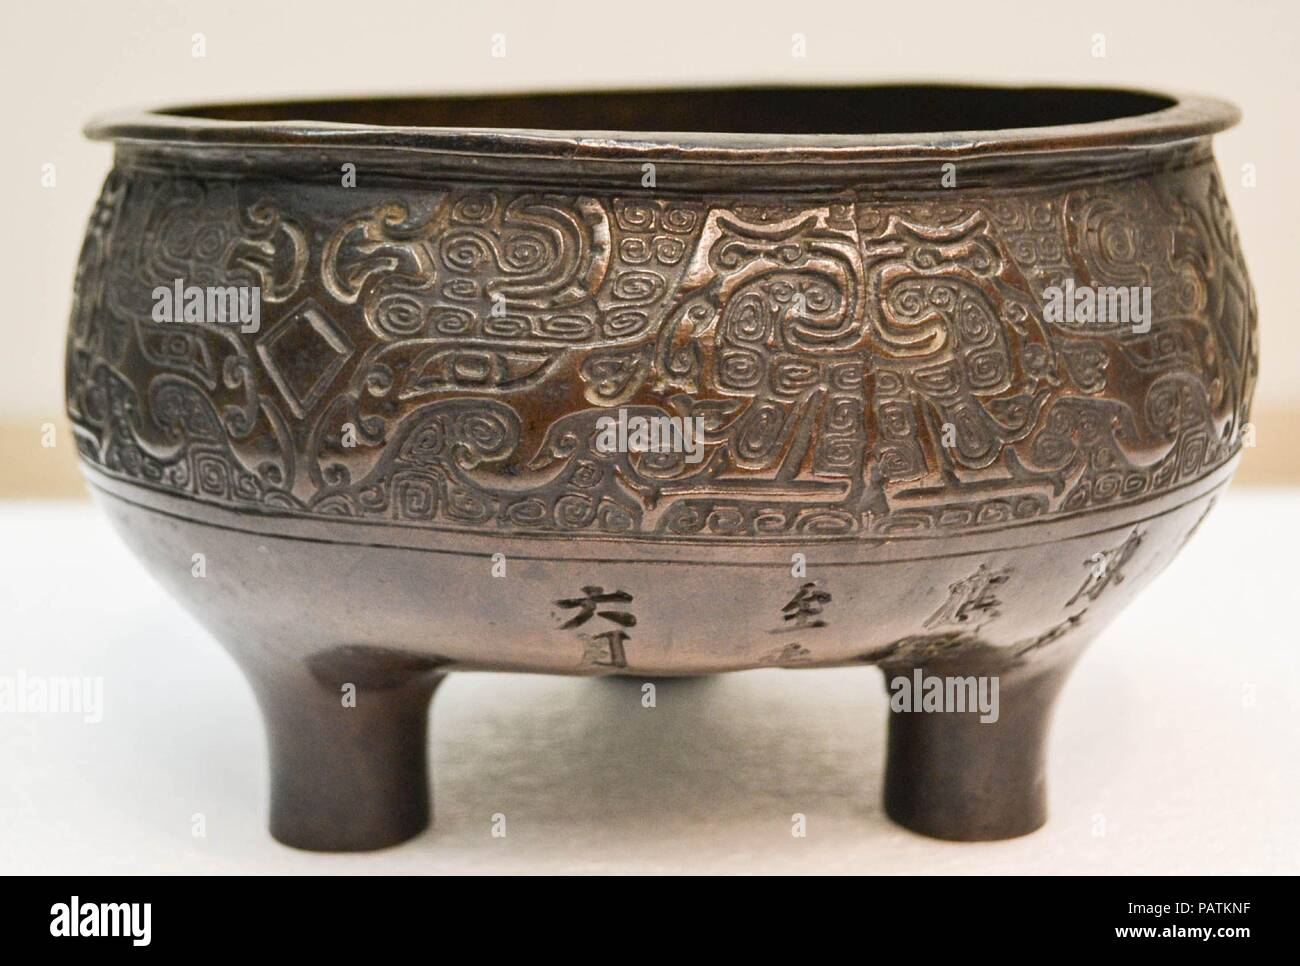 dating chinese incense burner im 24 dating a 17 year old